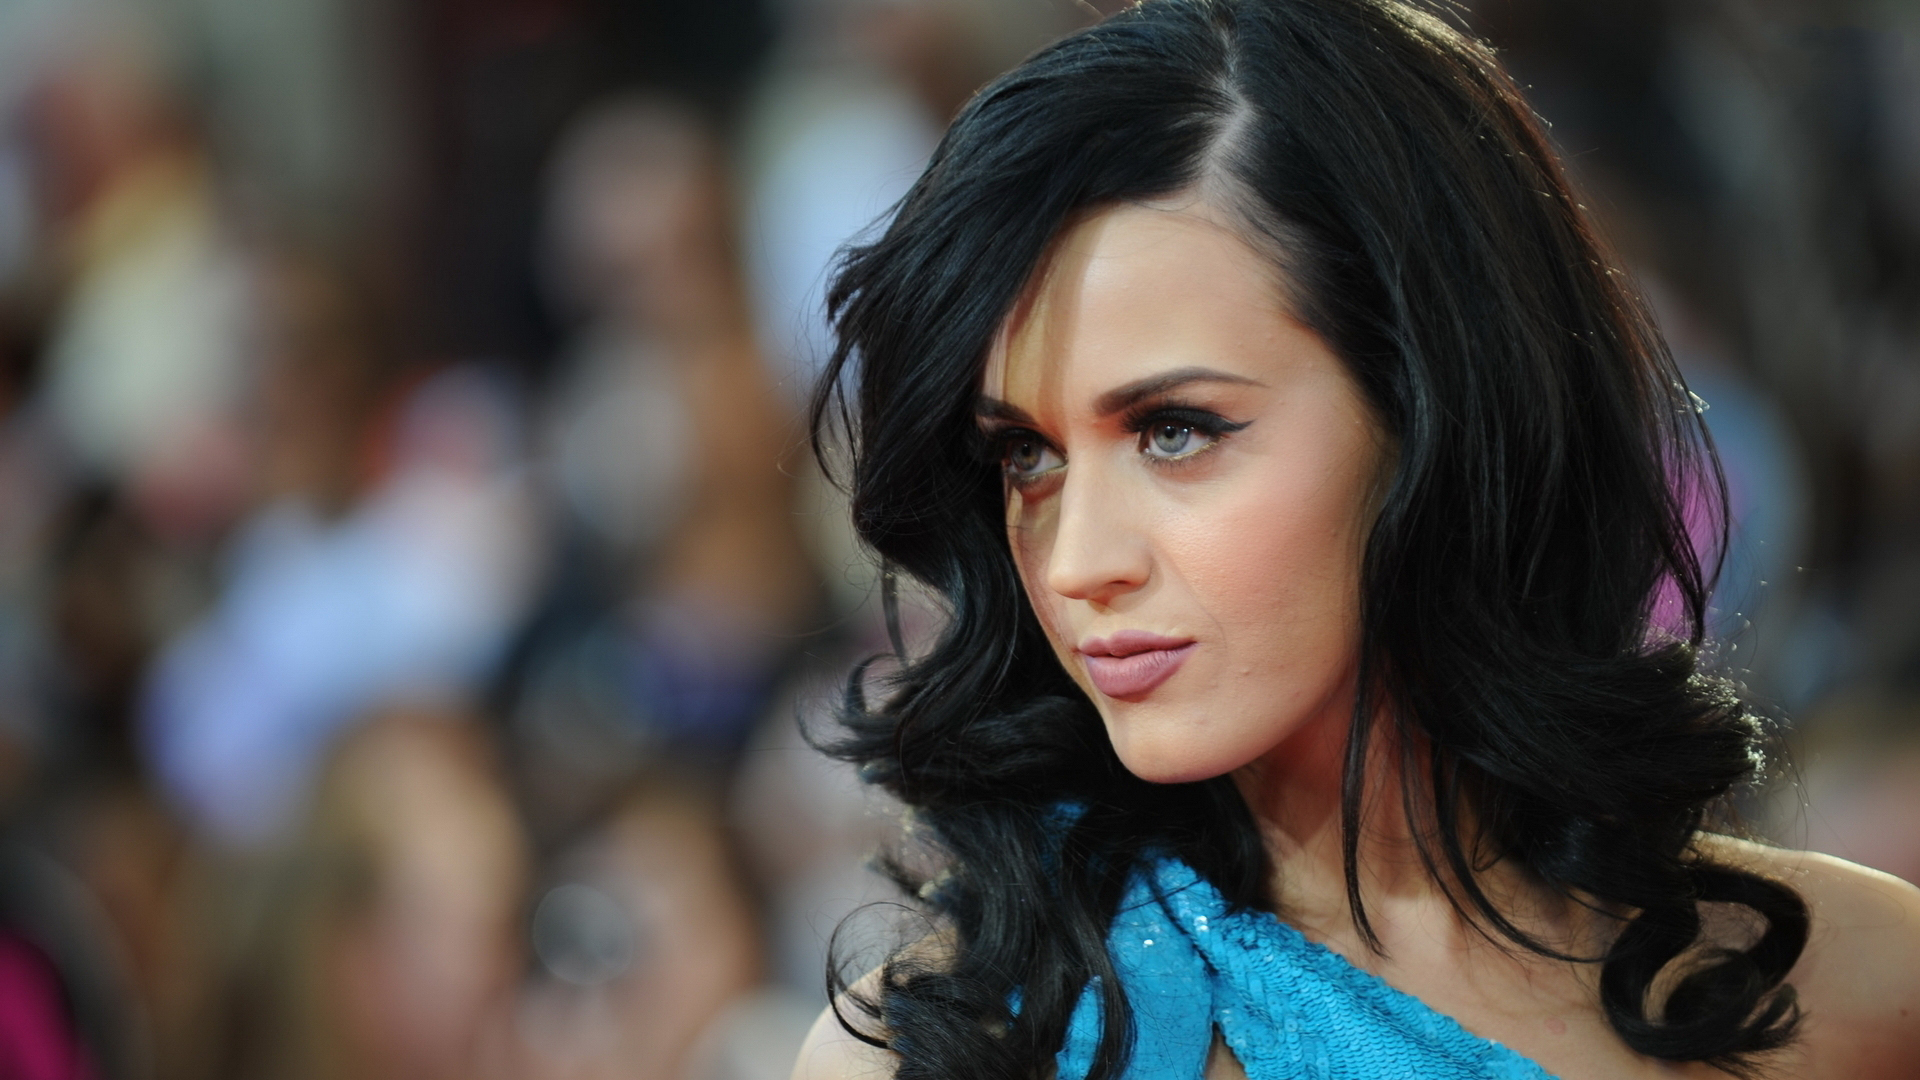 katy perry hd wallpaper